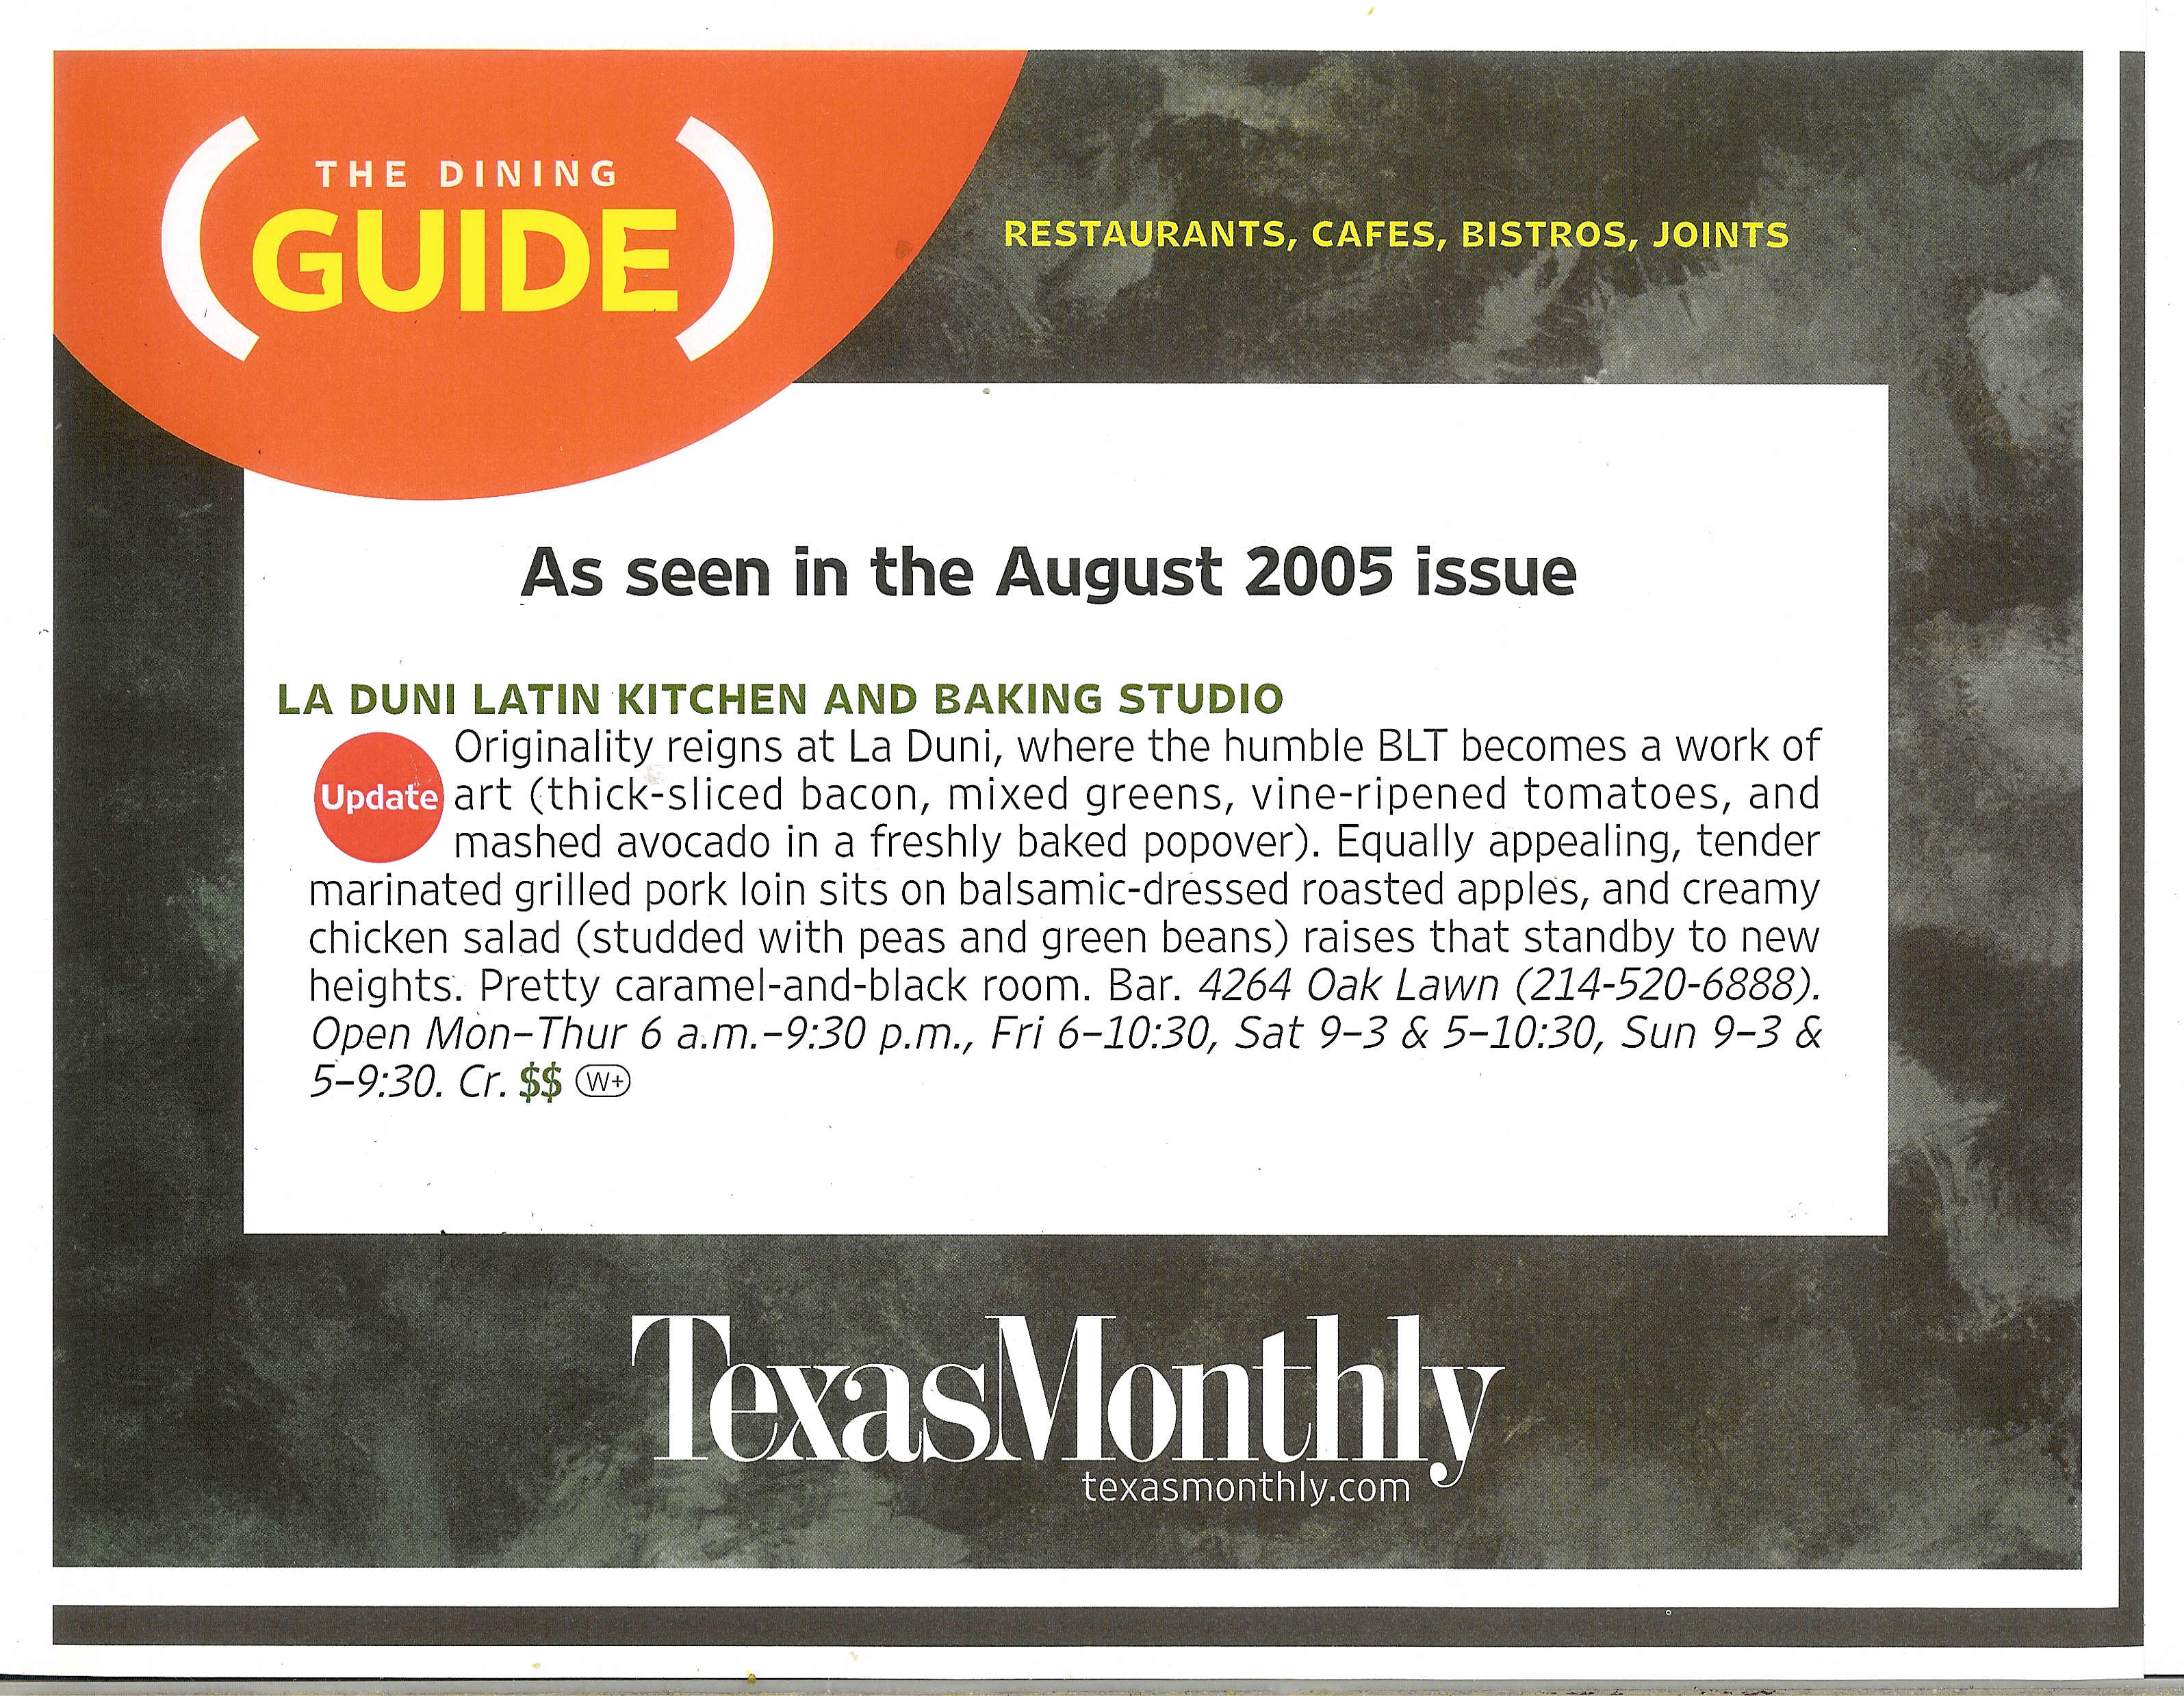 98 Texas Monthly Aug 05